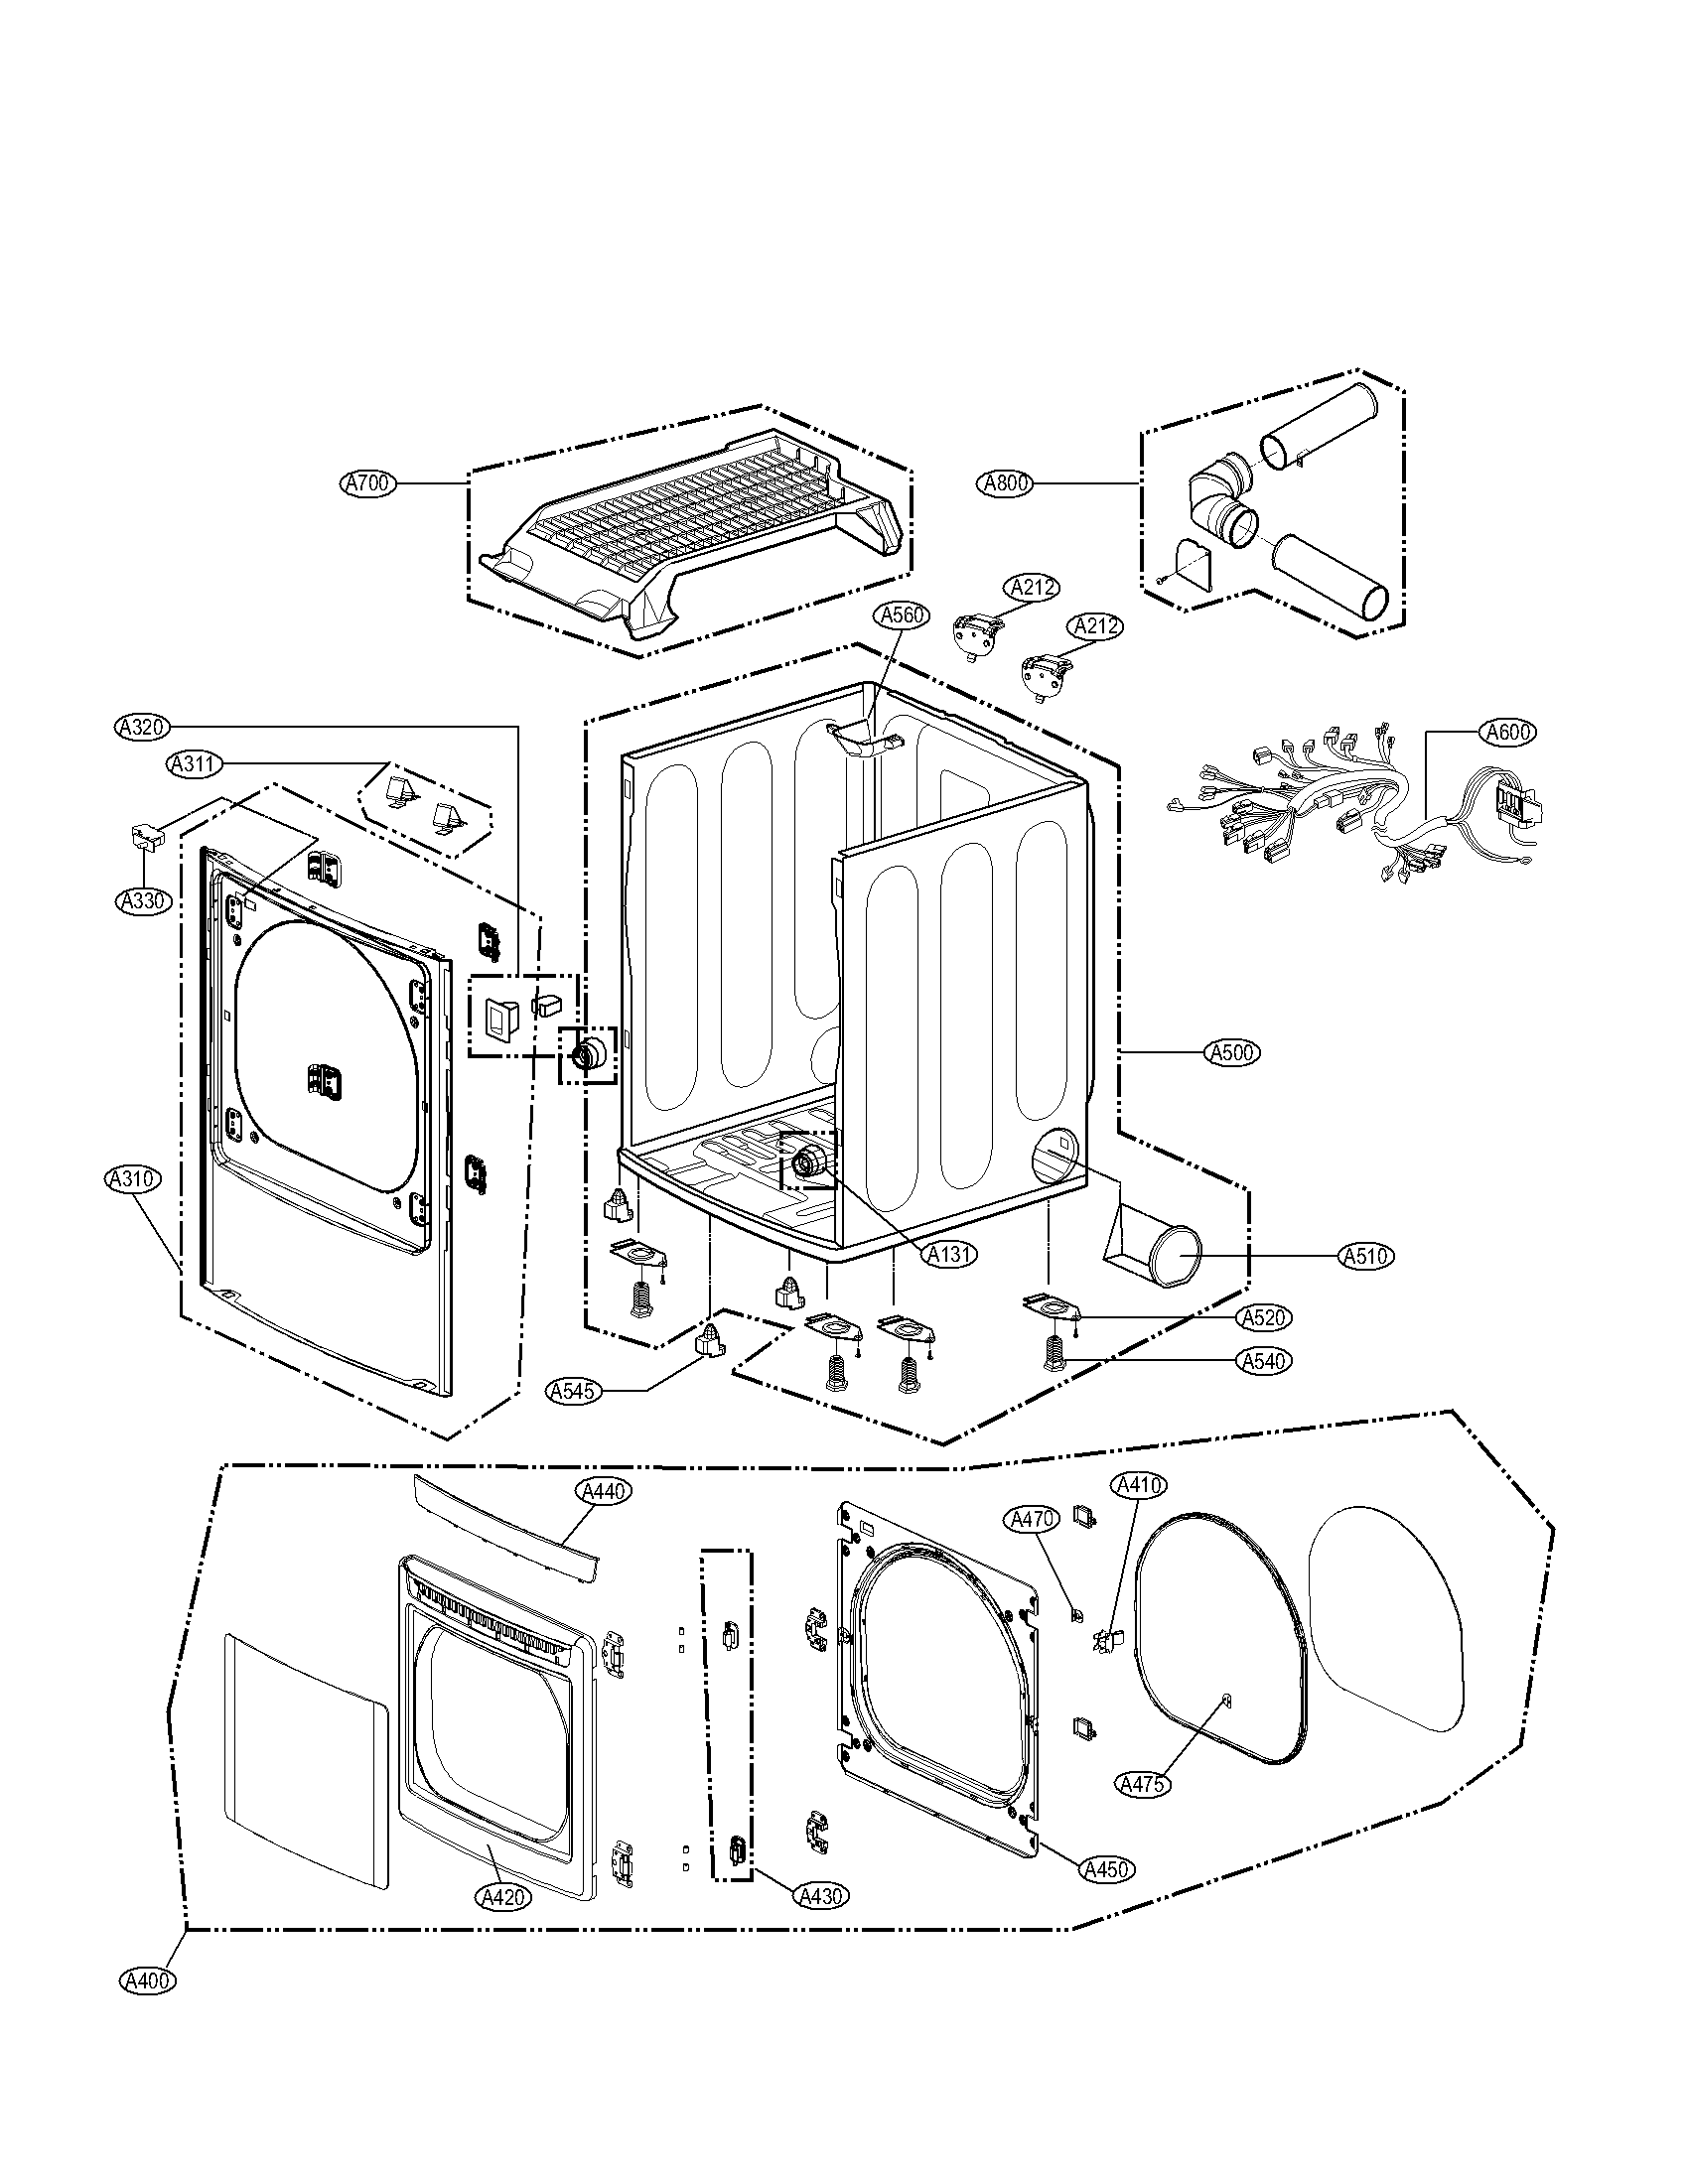 I need to gain acces to the inside of my LG model DLG5002W ... Kenmore Wiring Diagram on